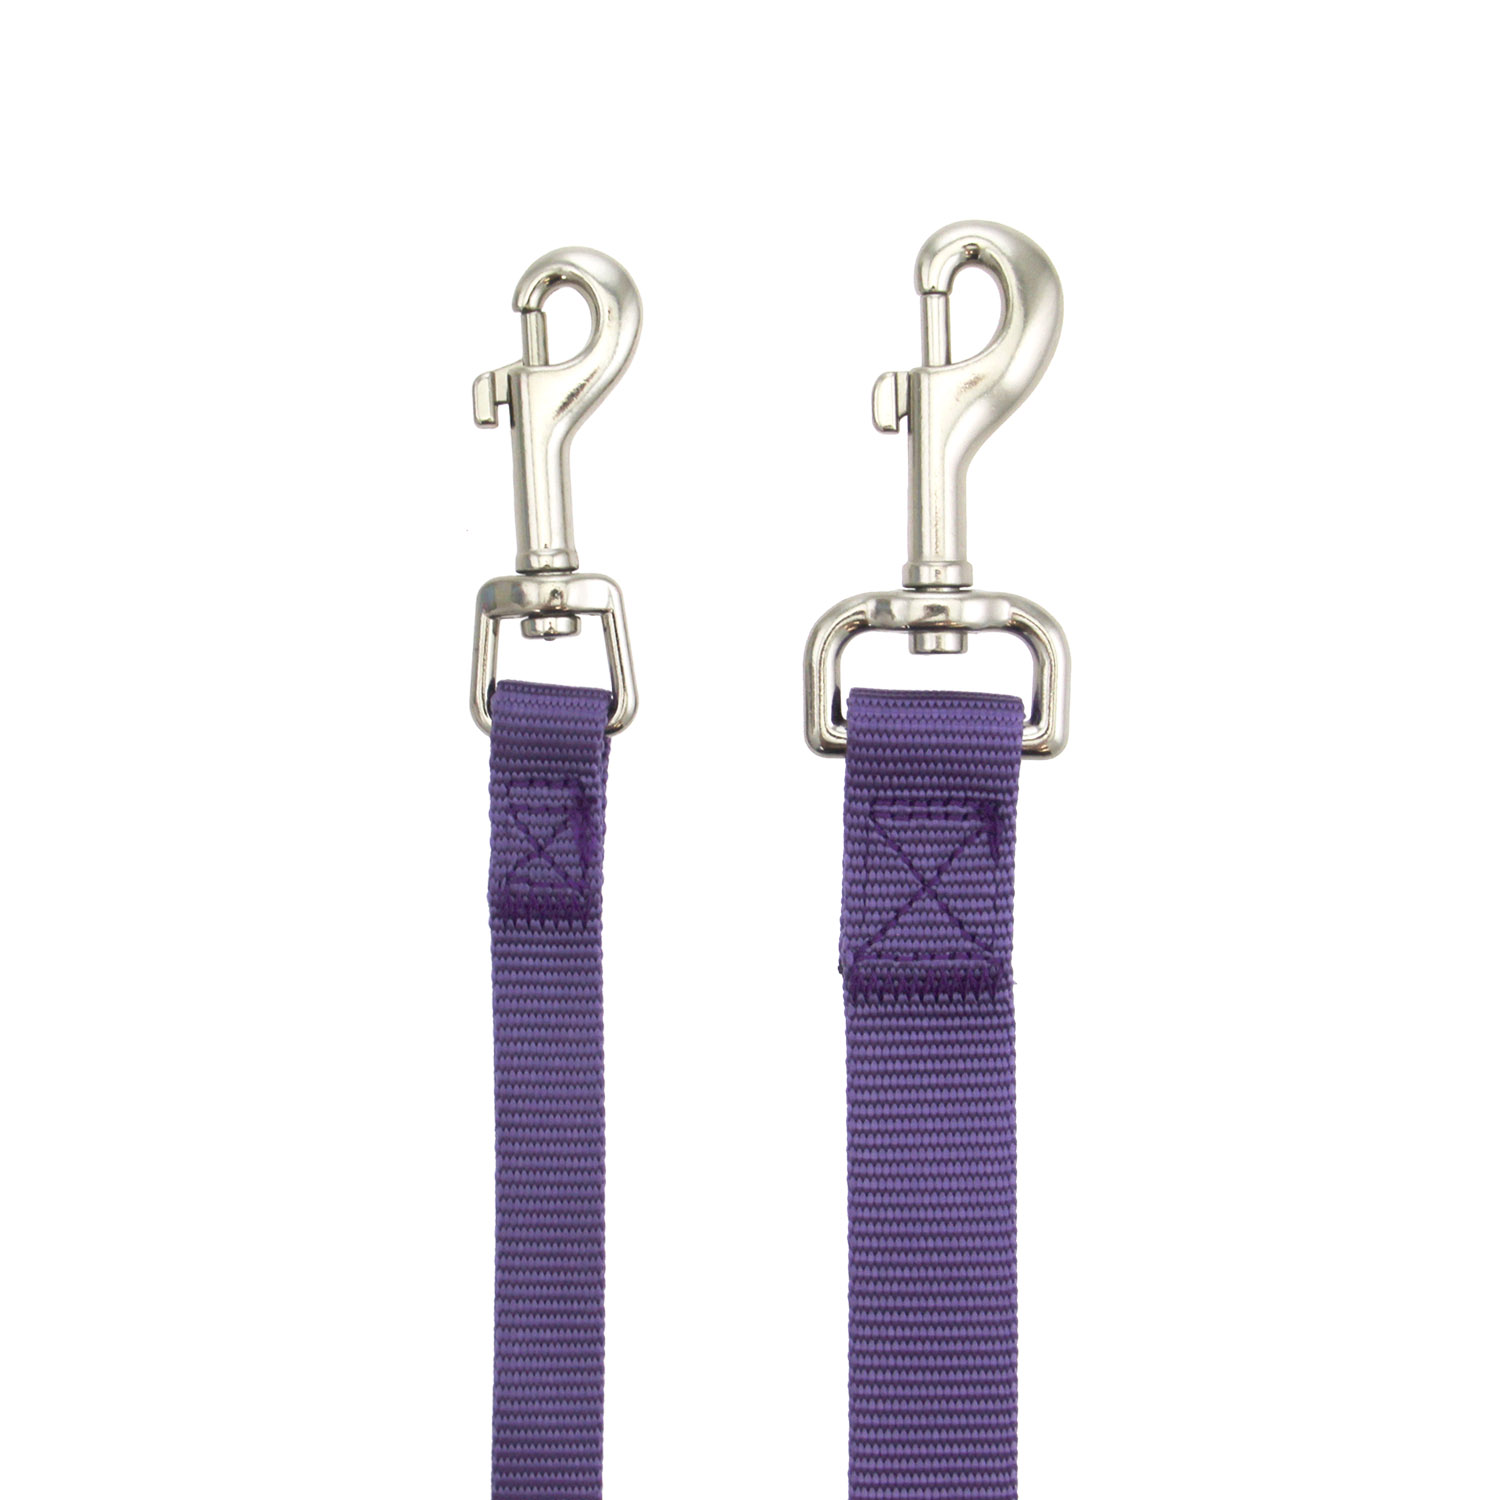 Zack and Zoey Nylon Dog Leash - Ultra Violet